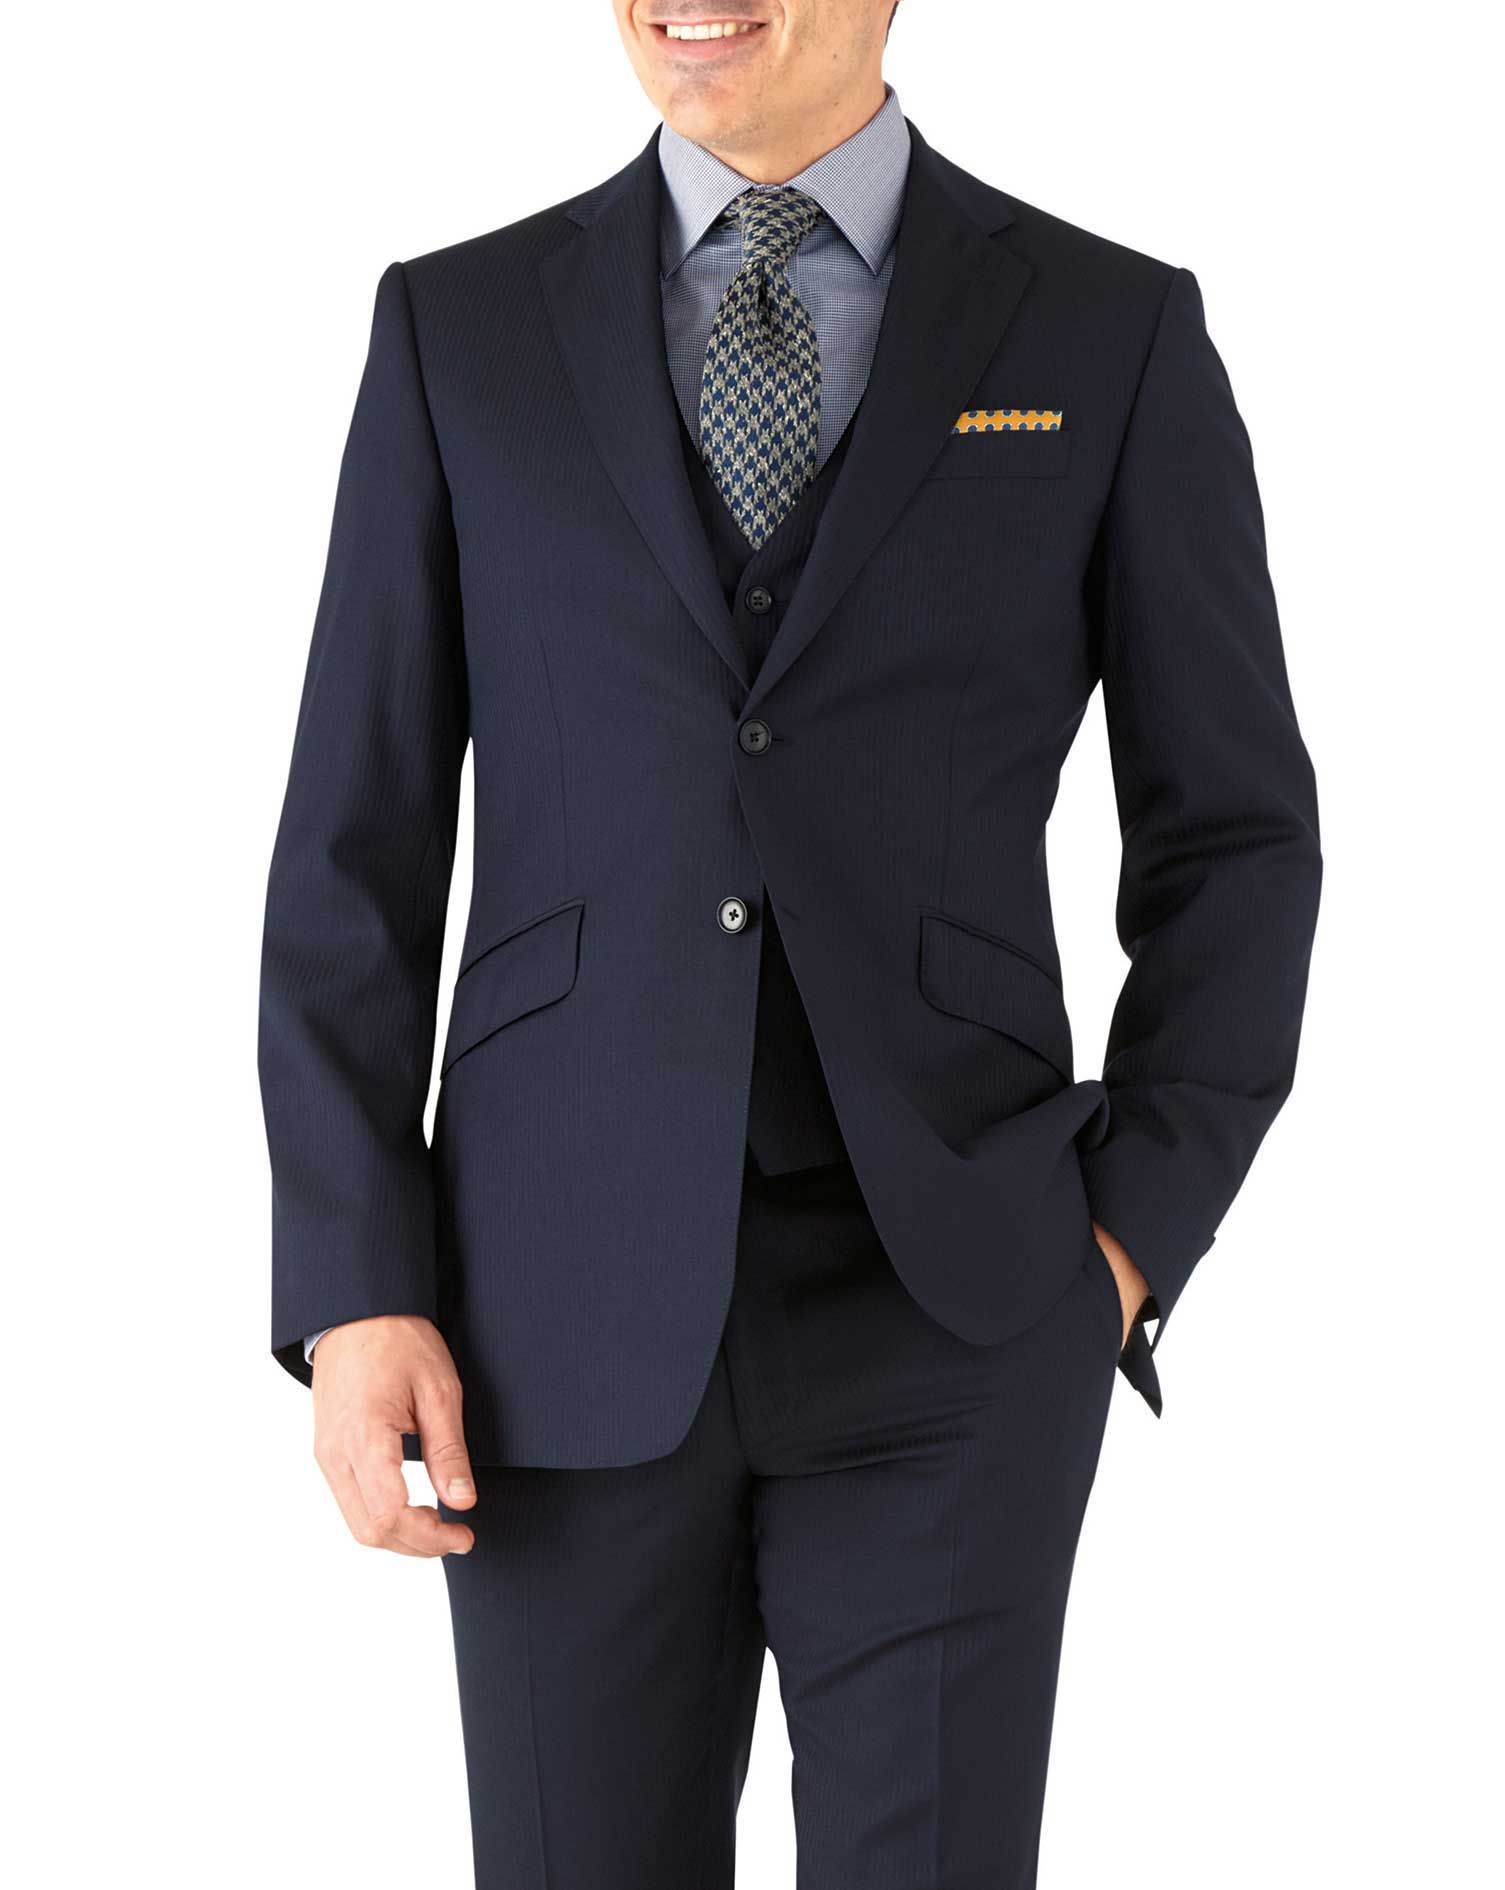 Navy Herringbone Slim Fit Italian Suit Wool Jacket Size 42 Short by Charles Tyrwhitt